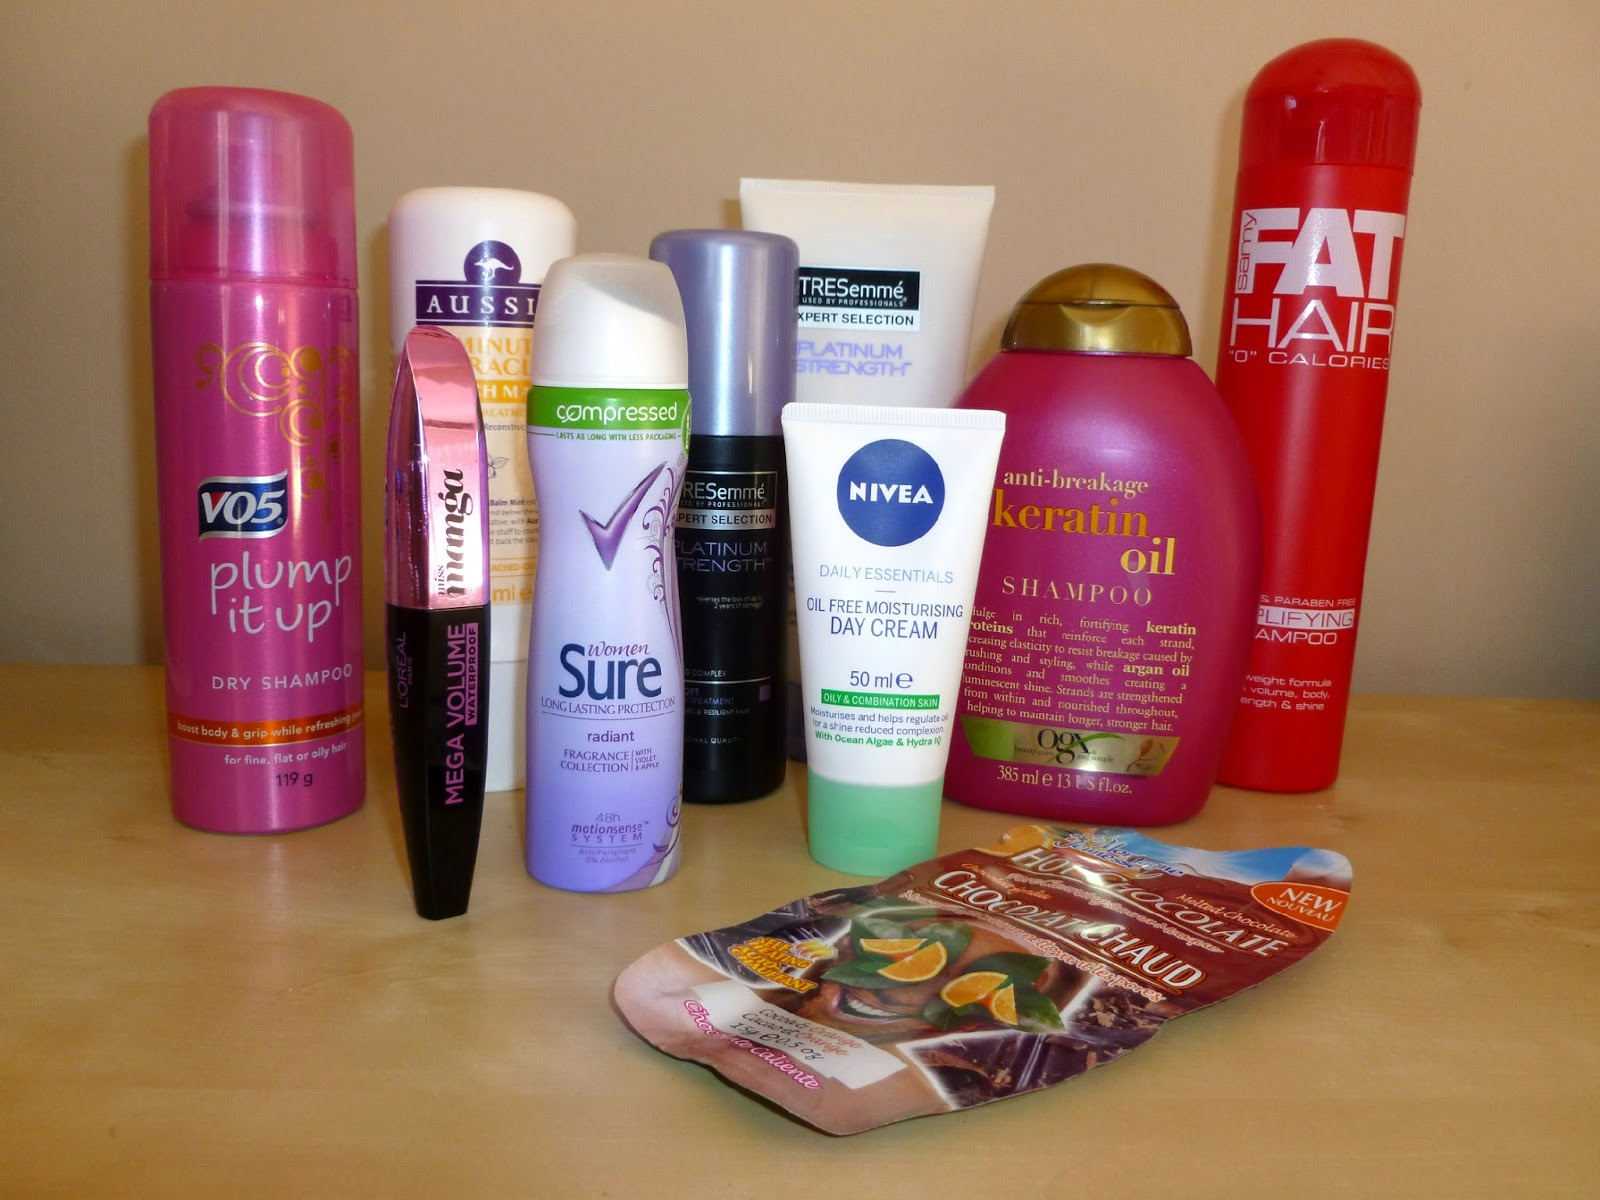 ... Boots and Superdrug over the past couple of months which I haven't featured on my blog before, so I thought I would show you some new purchases today.